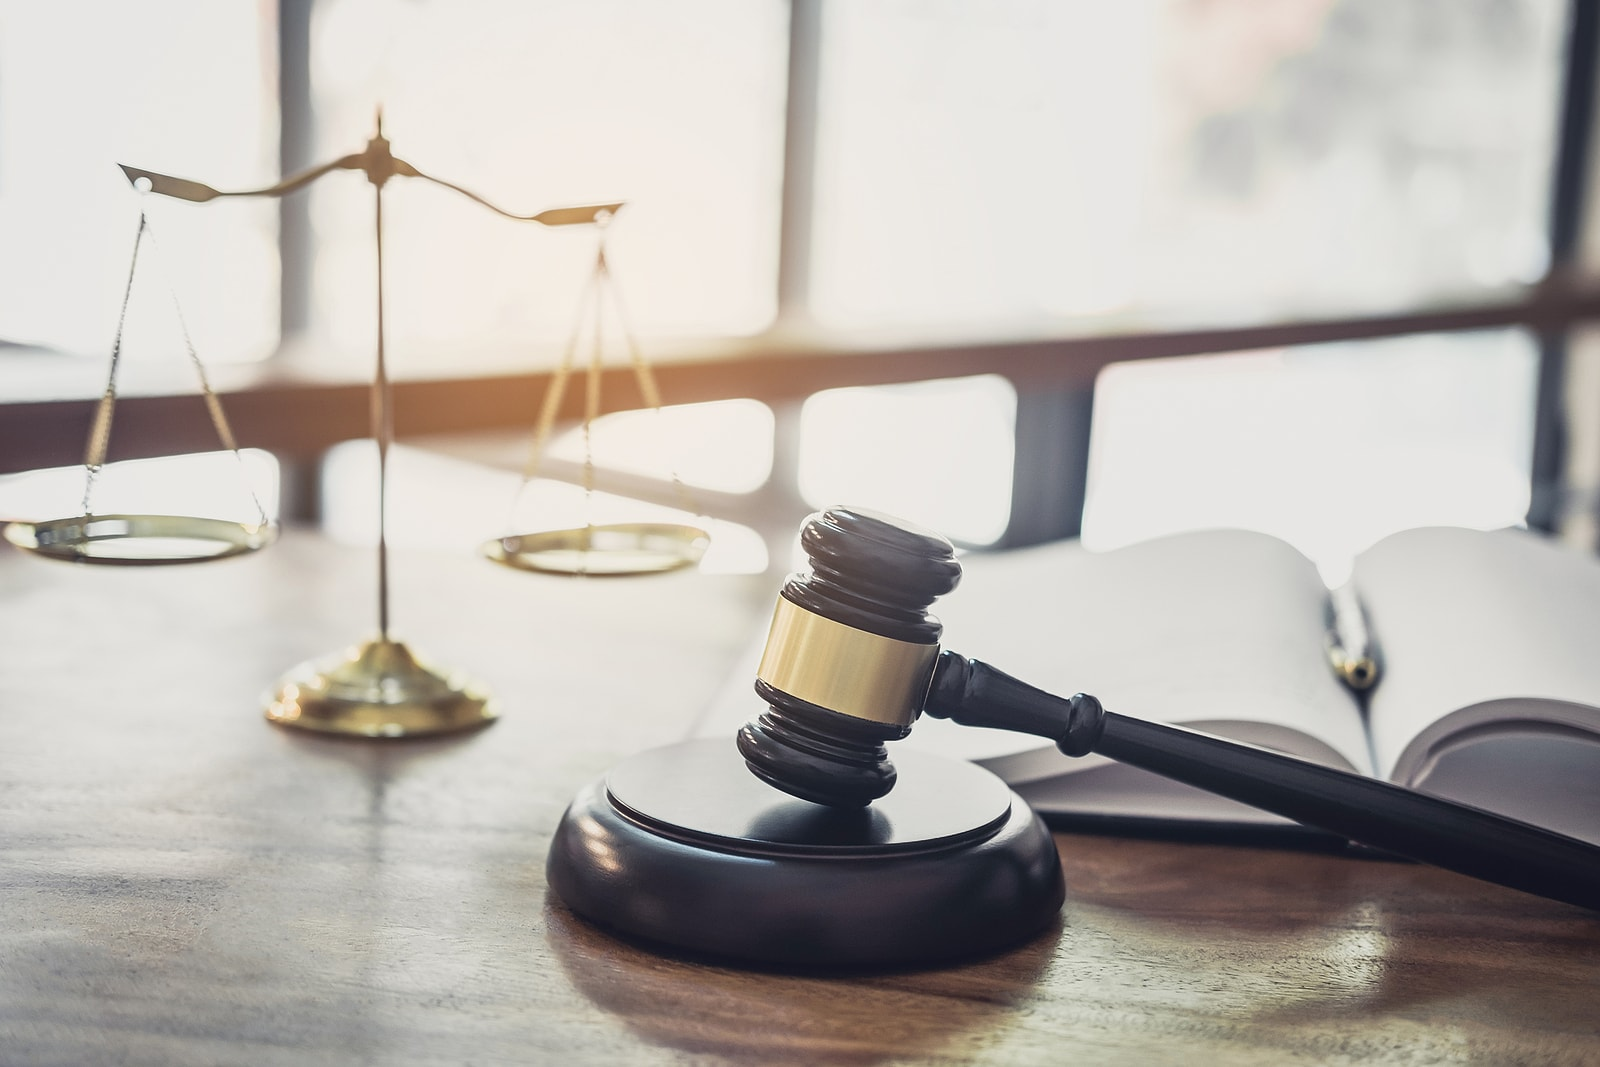 bigstock-Scales-Of-Justice-And-Gavel-On-370754038 (1)-min